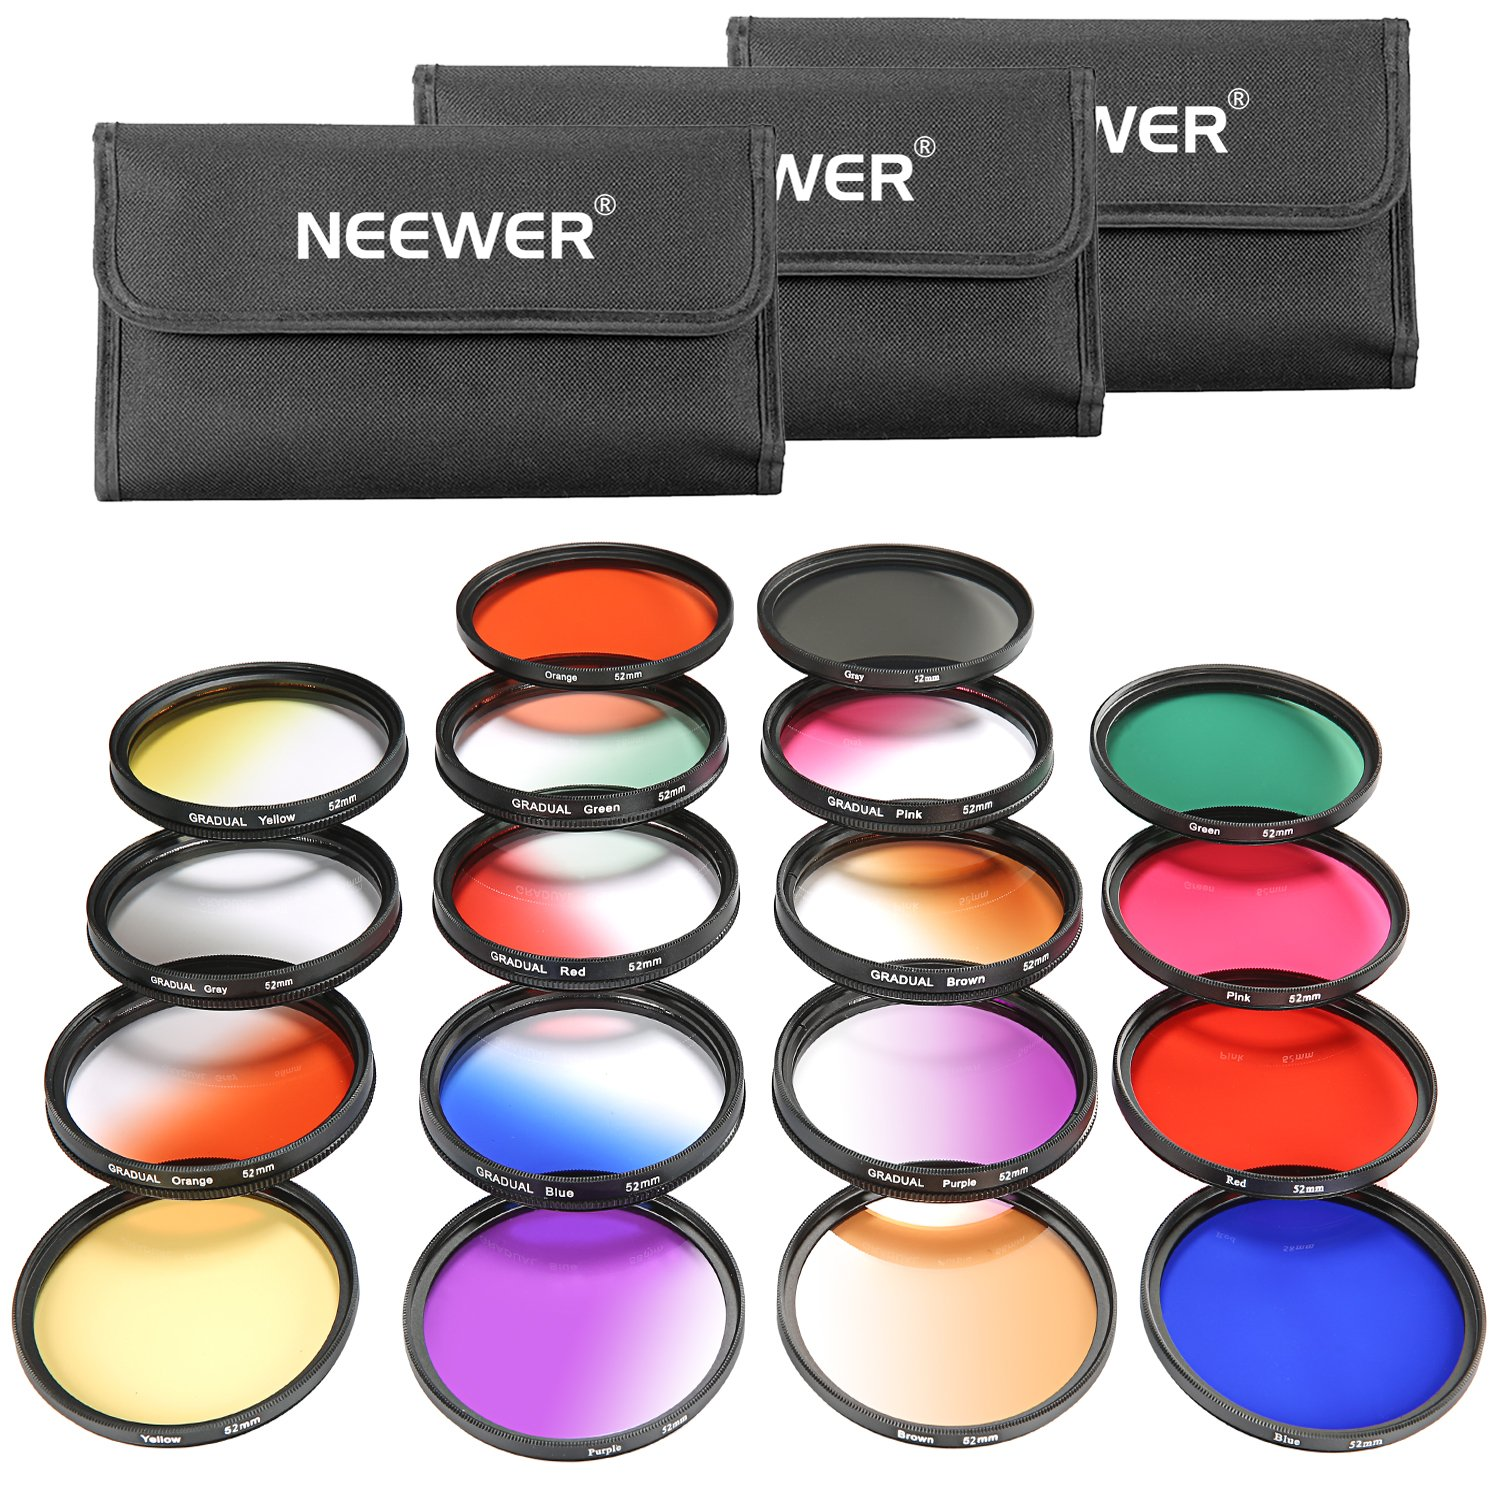 Neewer 52MM 18 Pieces Lens Filter Kit Includes:9 Pieces Full Color Filter, 9 Pieces Graduated Filter,3 Filter Pouch for Nikon D7100 D7000 D5200 D5100 D5000 D90 D80 and Other DSLR Camera with 52MM Lens